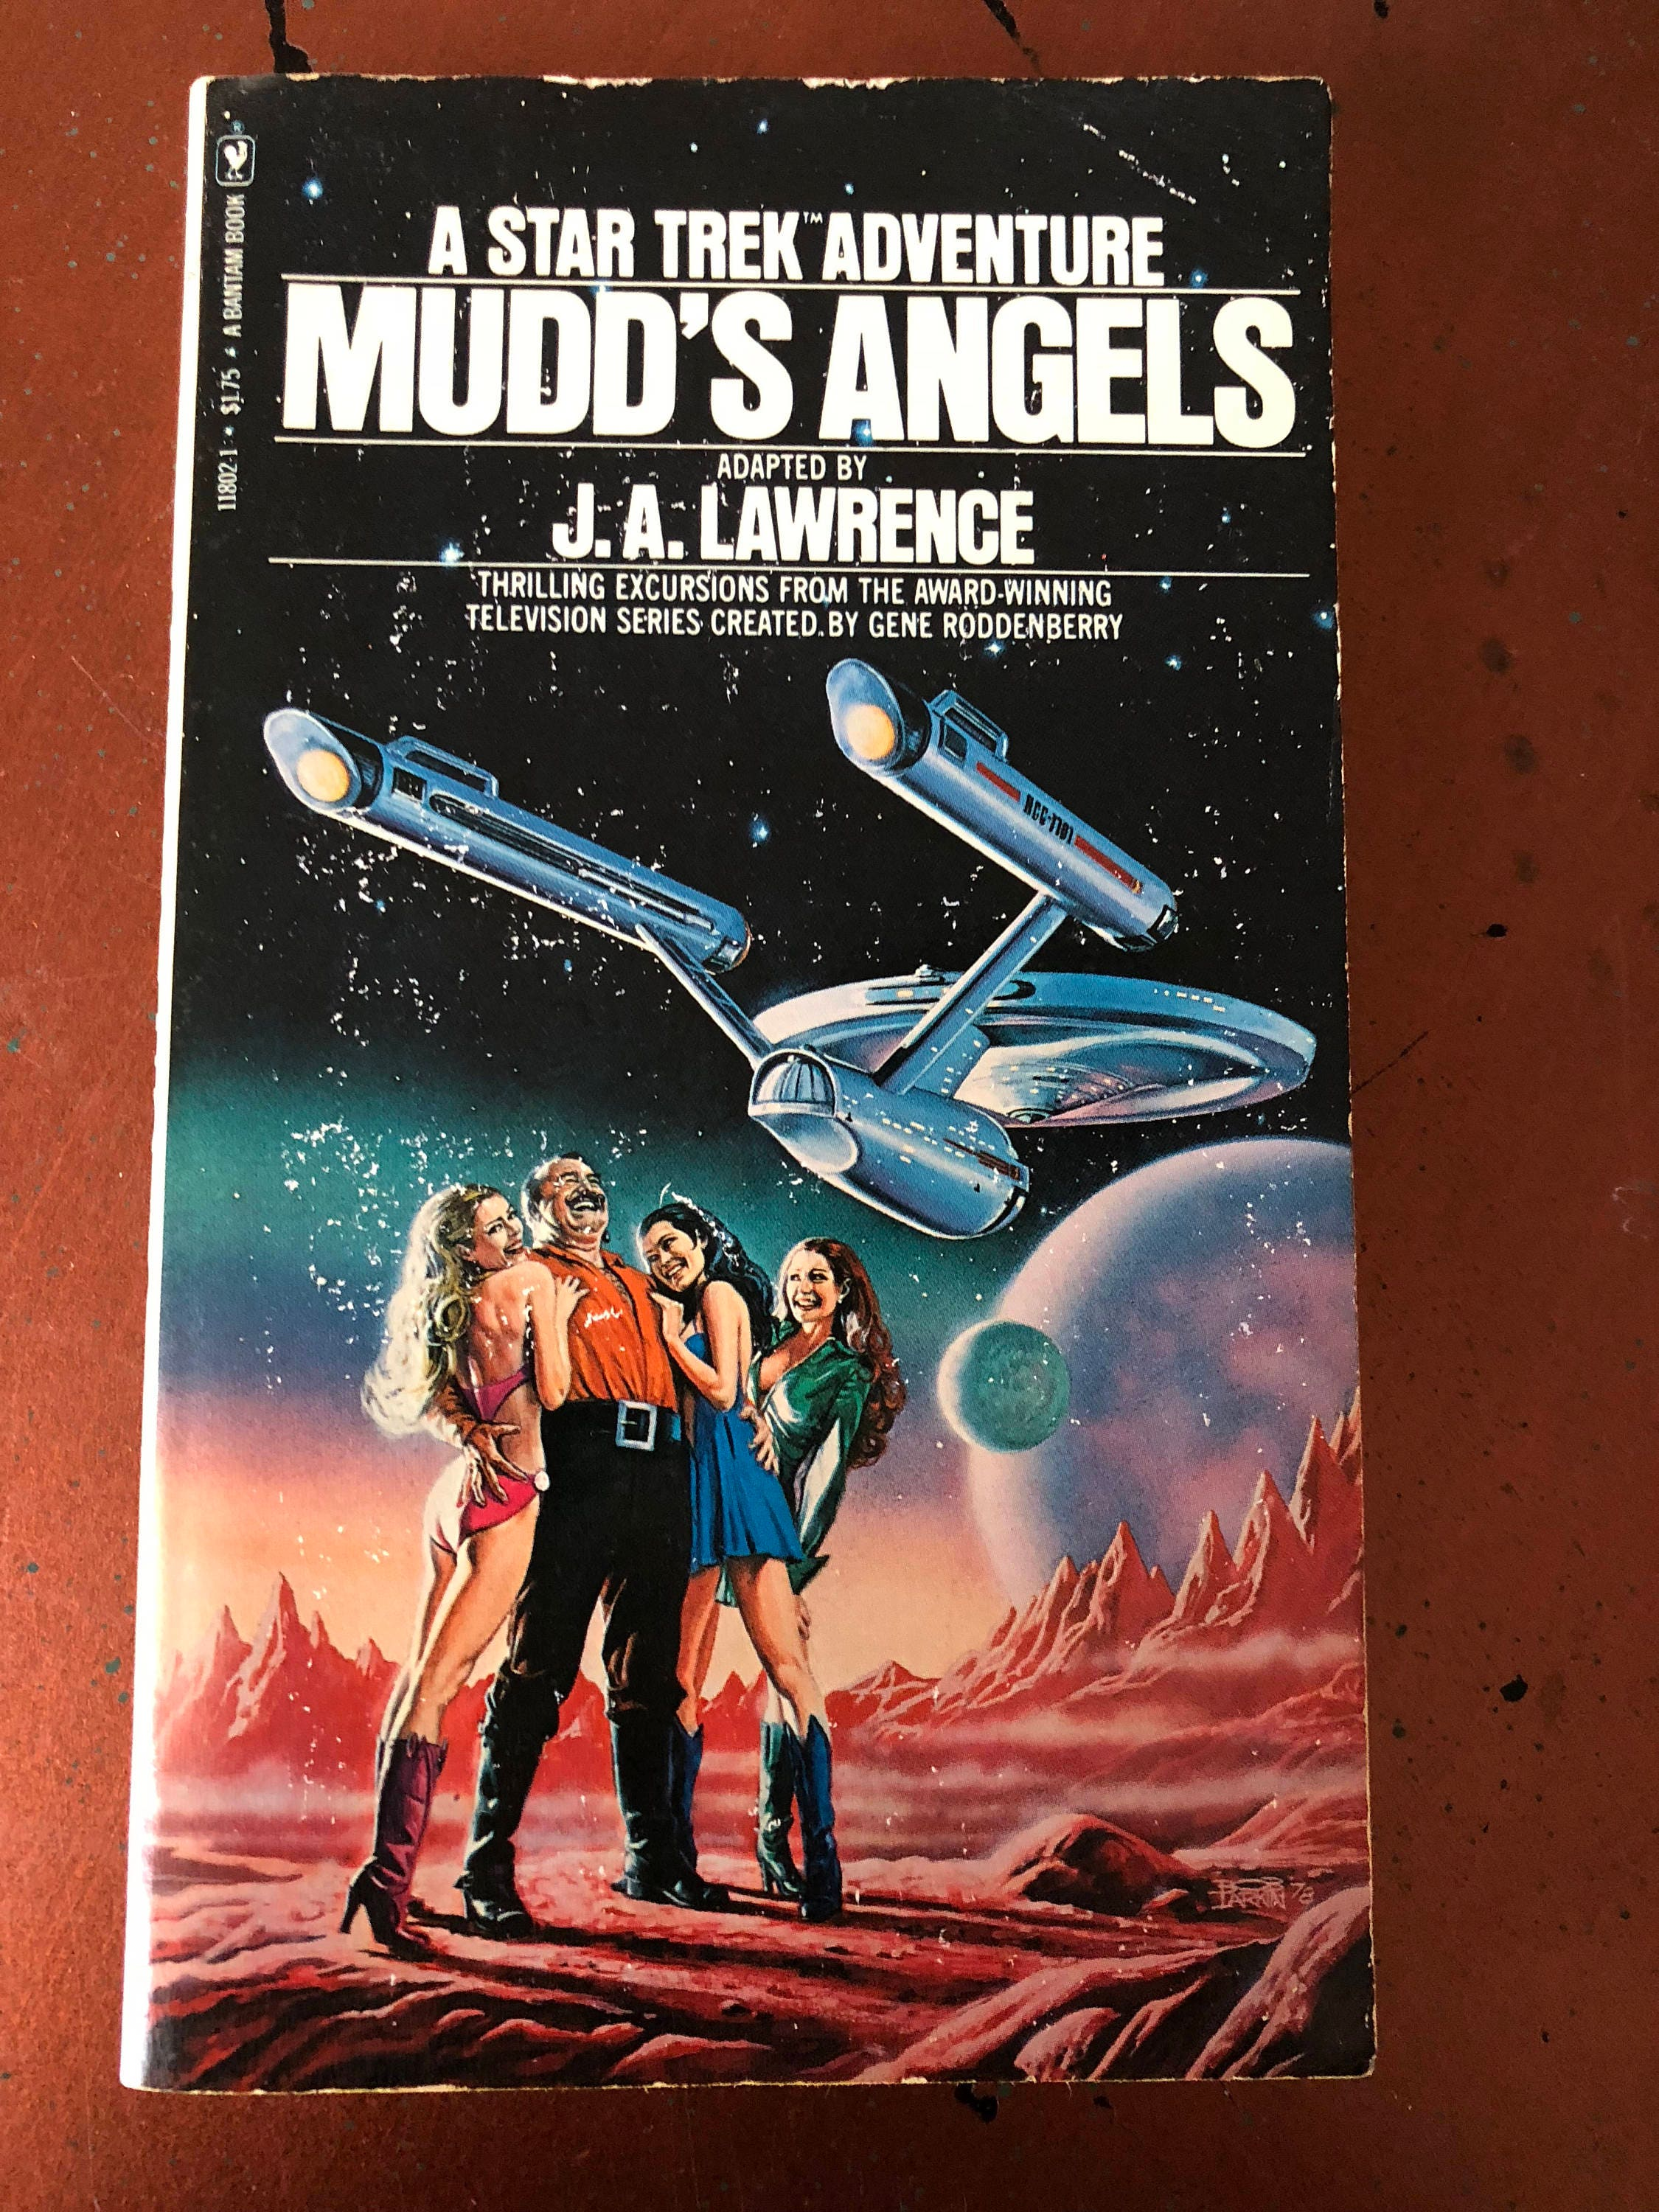 Mudd's Angels - A Star Trek Adventure - By J.A. Lawrence - Vintage Sci-Fi Book